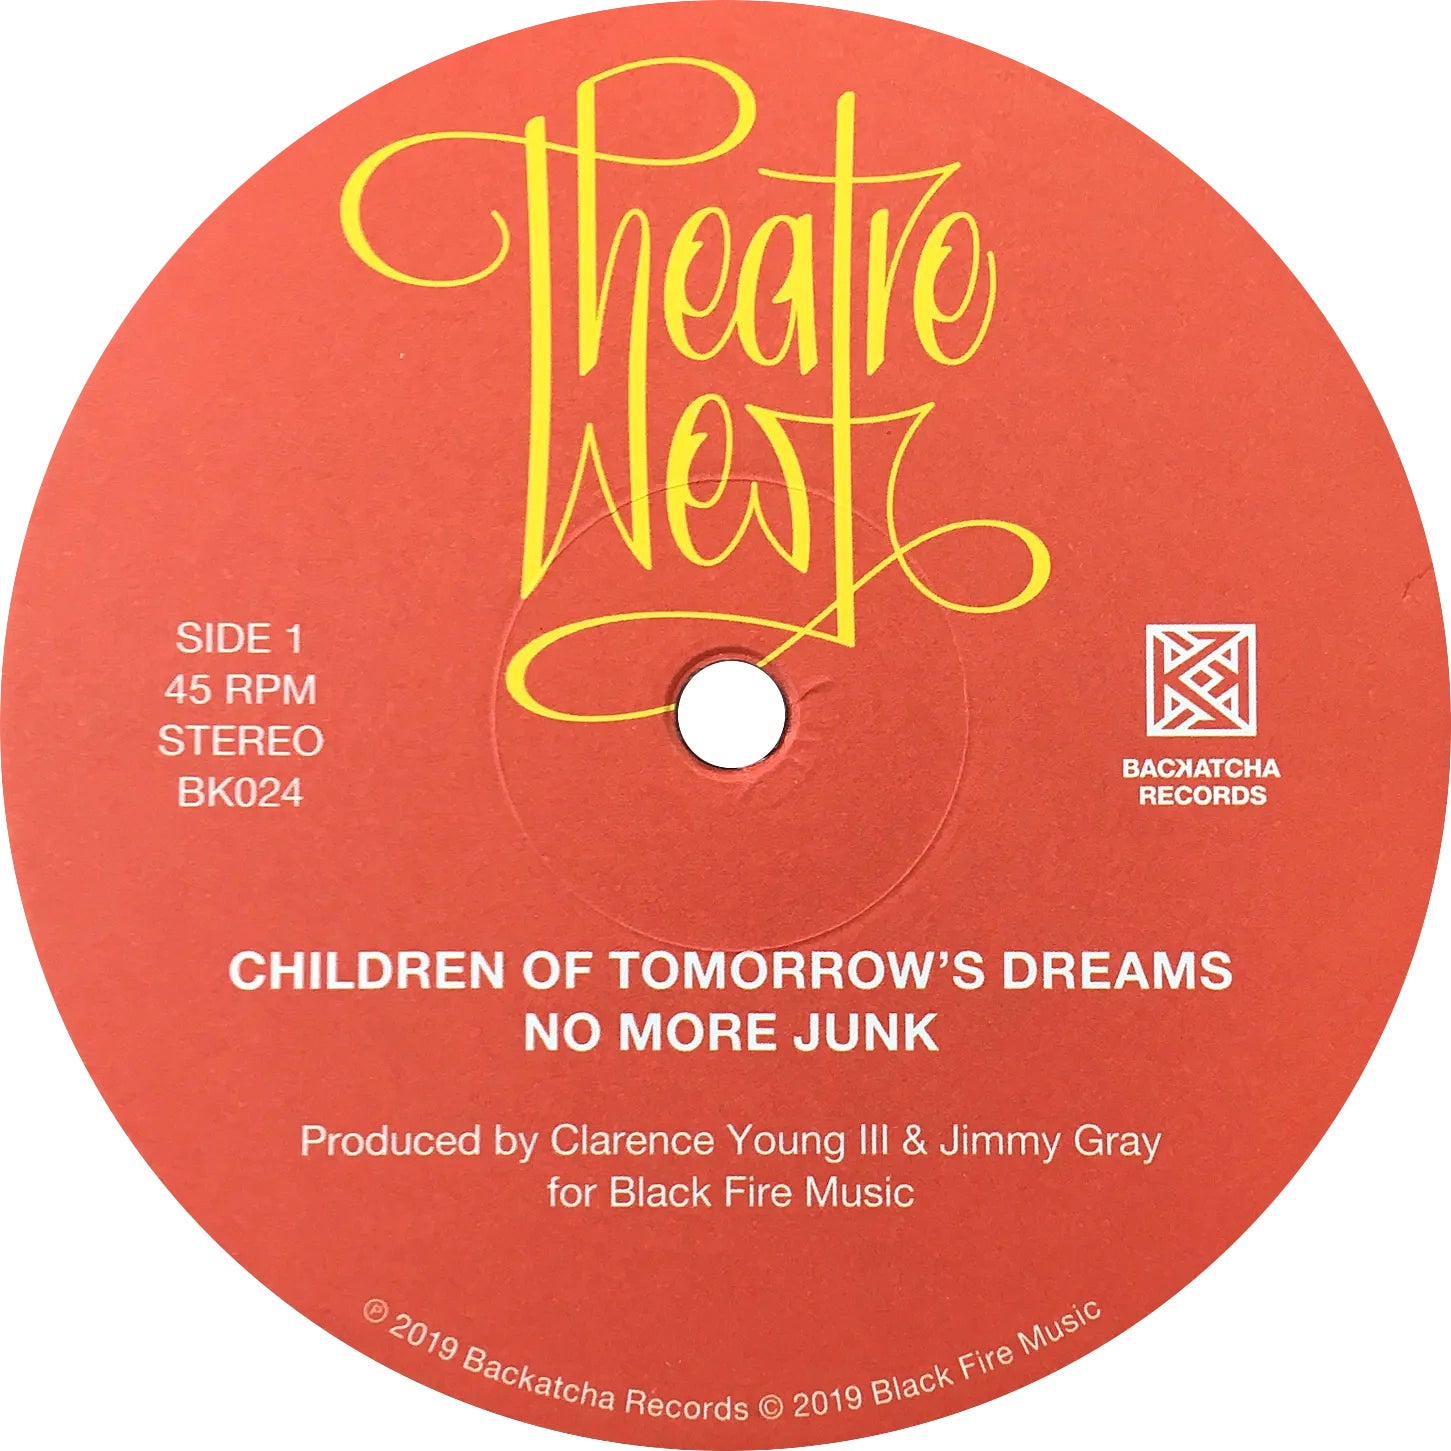 "Image of Theatre West Limited 12"" EP"